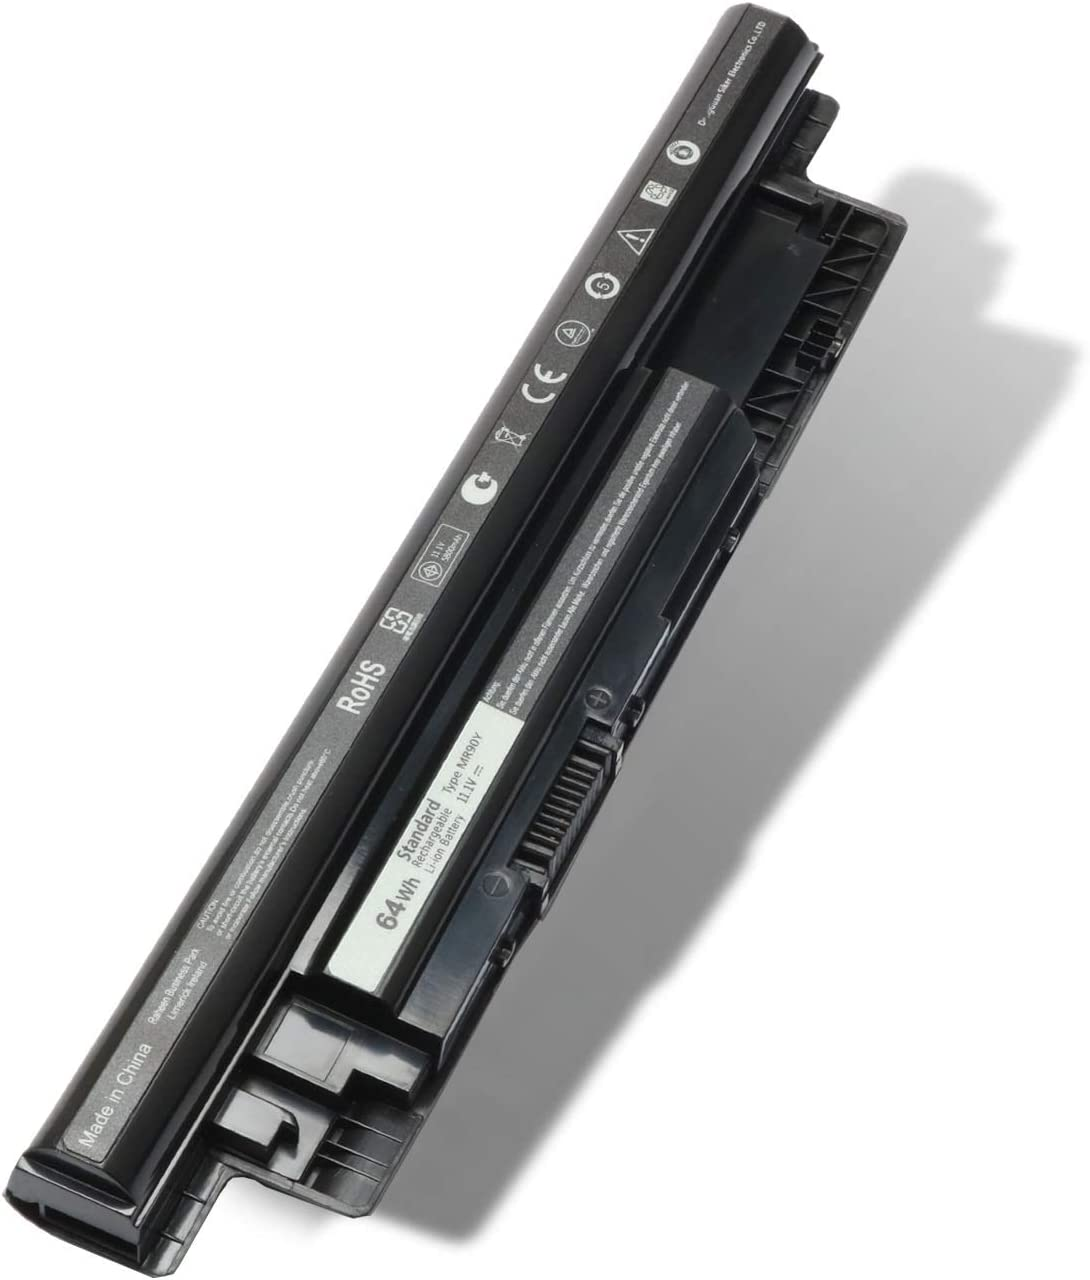 MR90Y Laptop Battery 65WH XCMRD Replacement for Dell Inspiron 14-3421 14-3437 14R-5421 14R-5437 15-3521 15-3542 15R-5537 15R-5521 17-3721 17R-5721 17R-5737 P/N: 0MF69 6HY59 N121Y